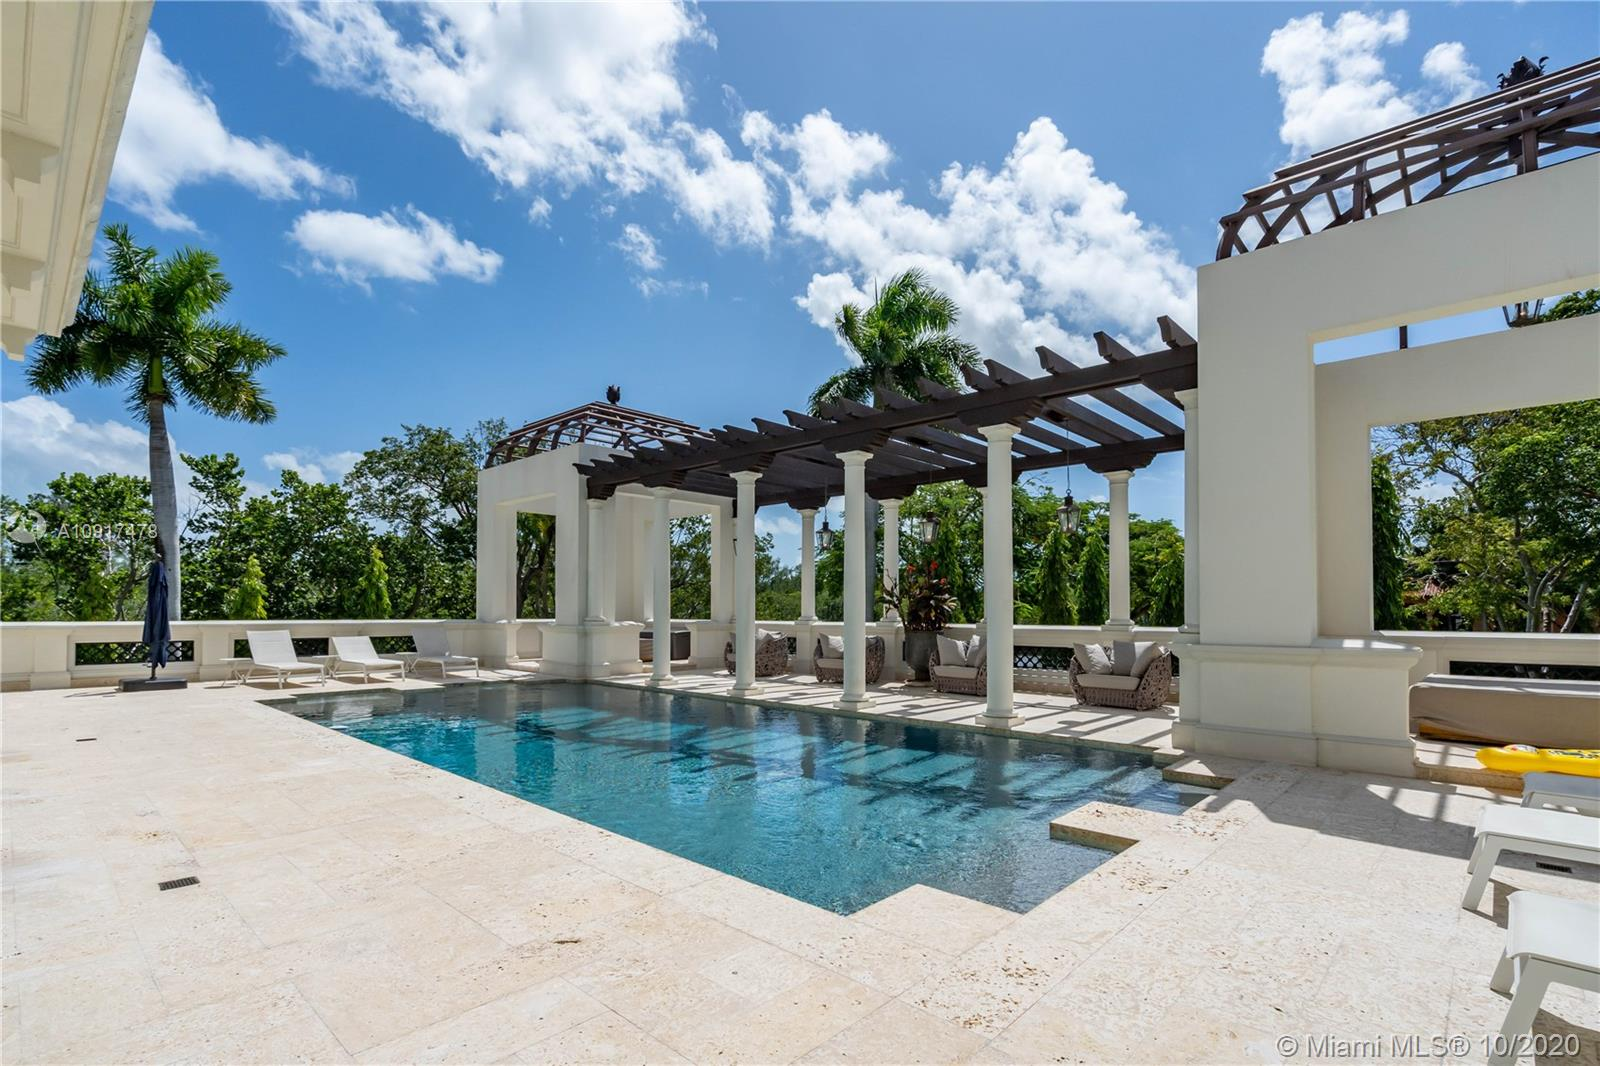 300 Costanera rd- coral-gables-fl-33143-a10917478-Pic16